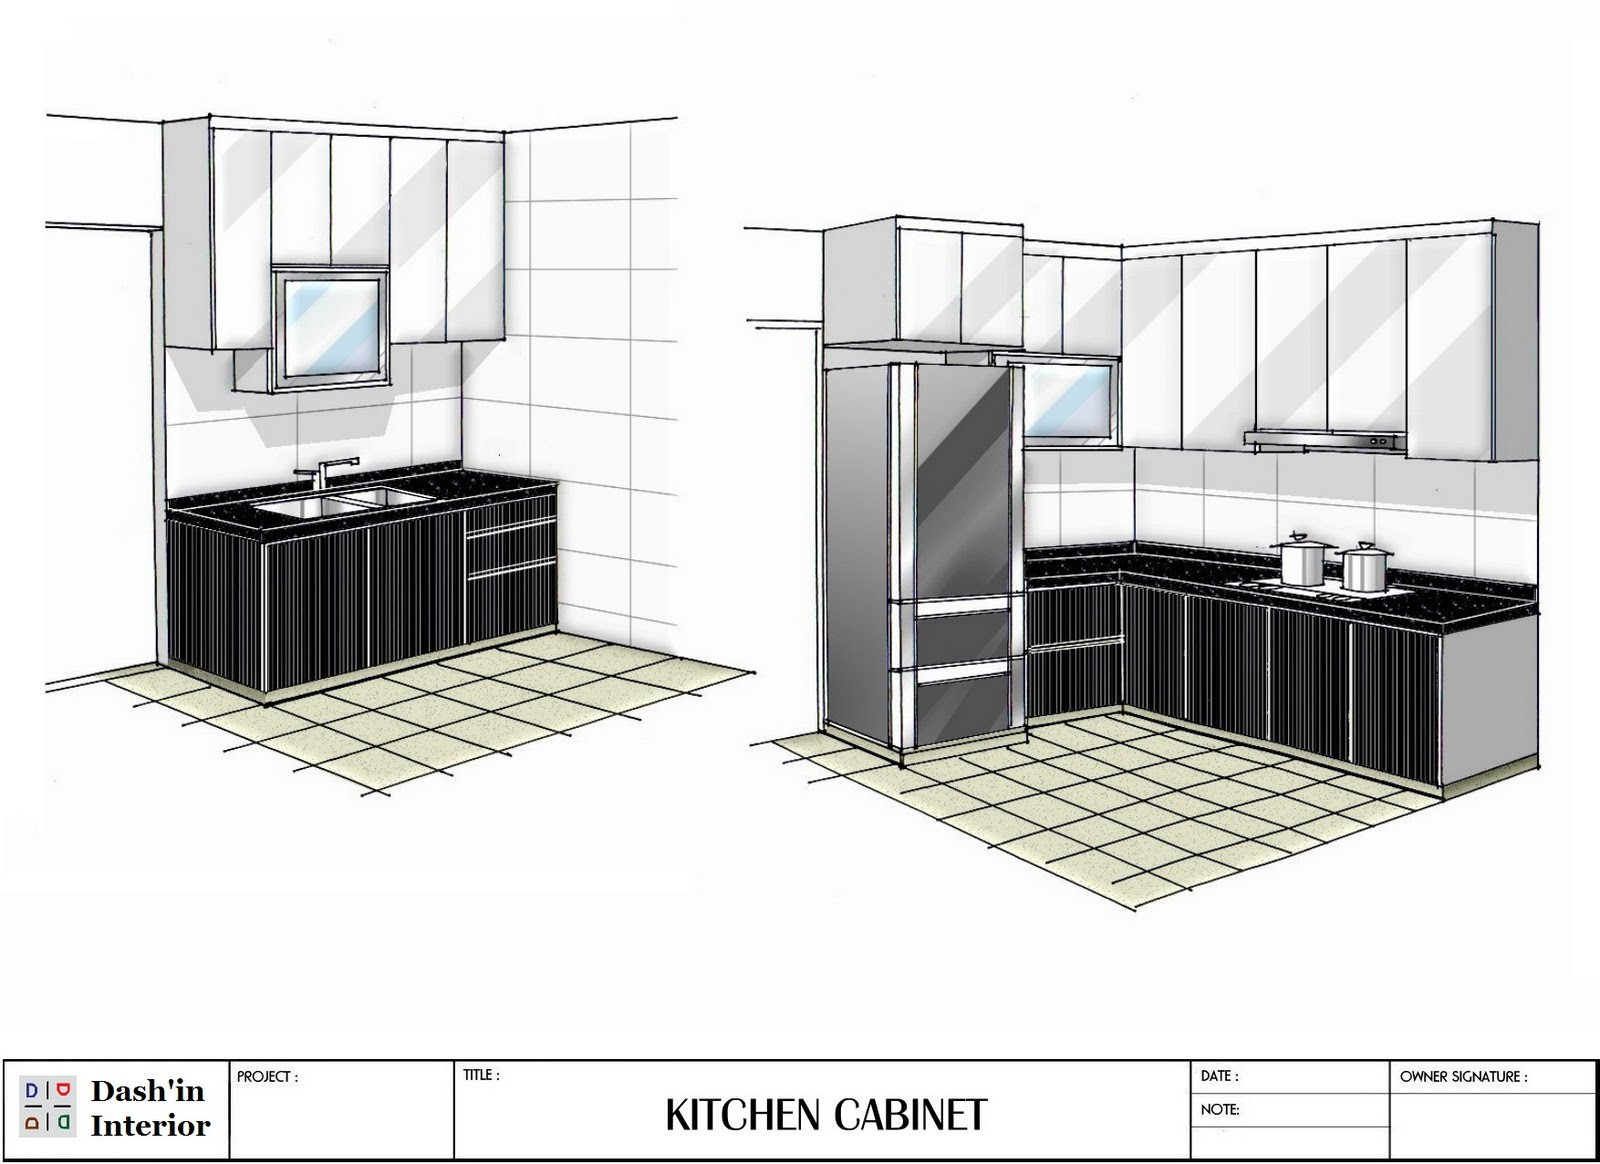 Hand Drawn Line Drawing of Kitchen Cabinets